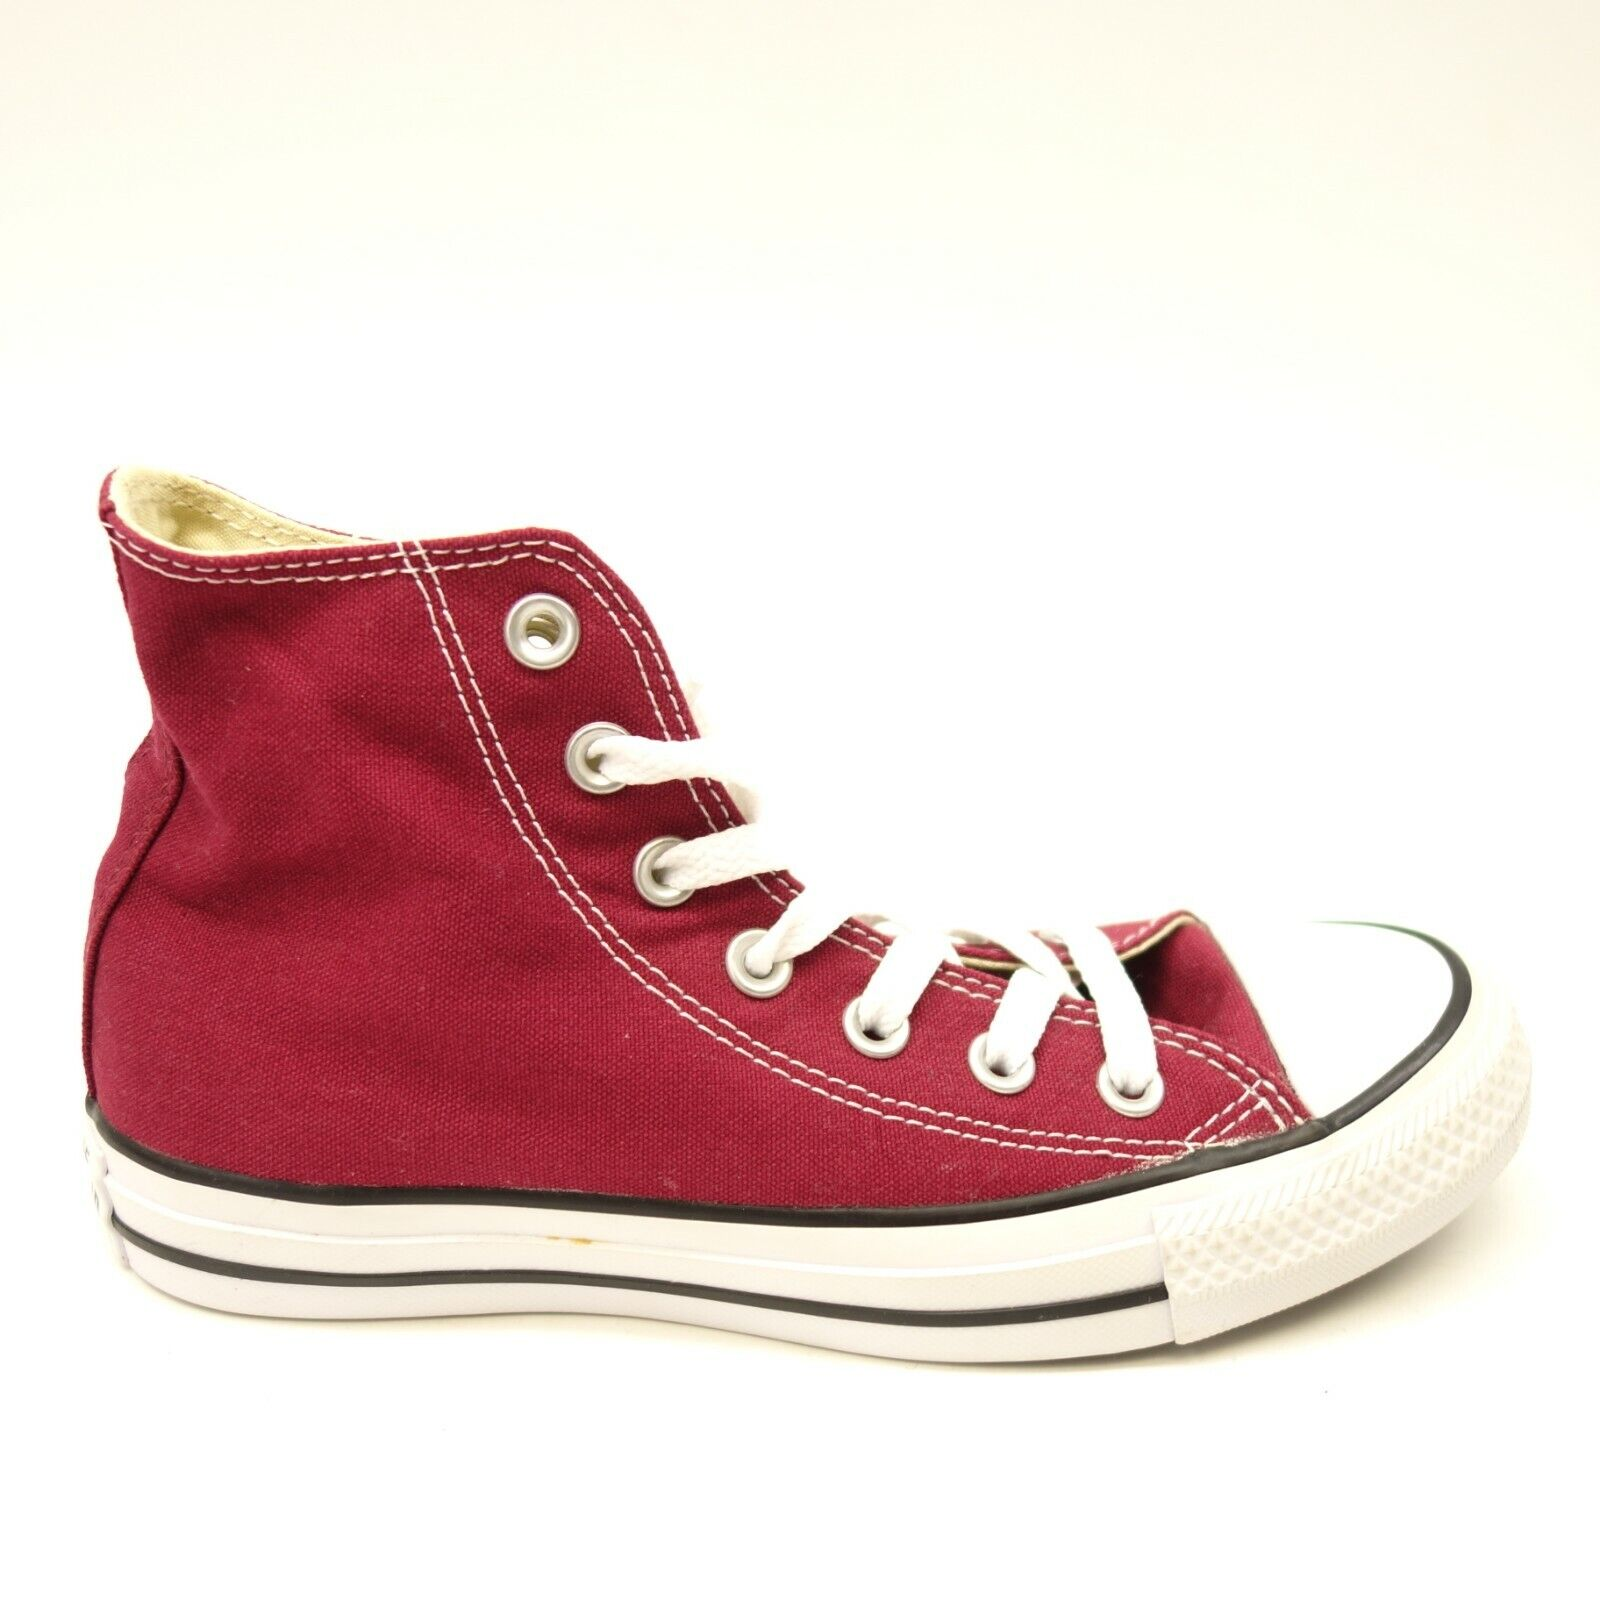 New Converse Womens Classic Maroon Chuck Taylor All Star High Top Canvas shoes 6